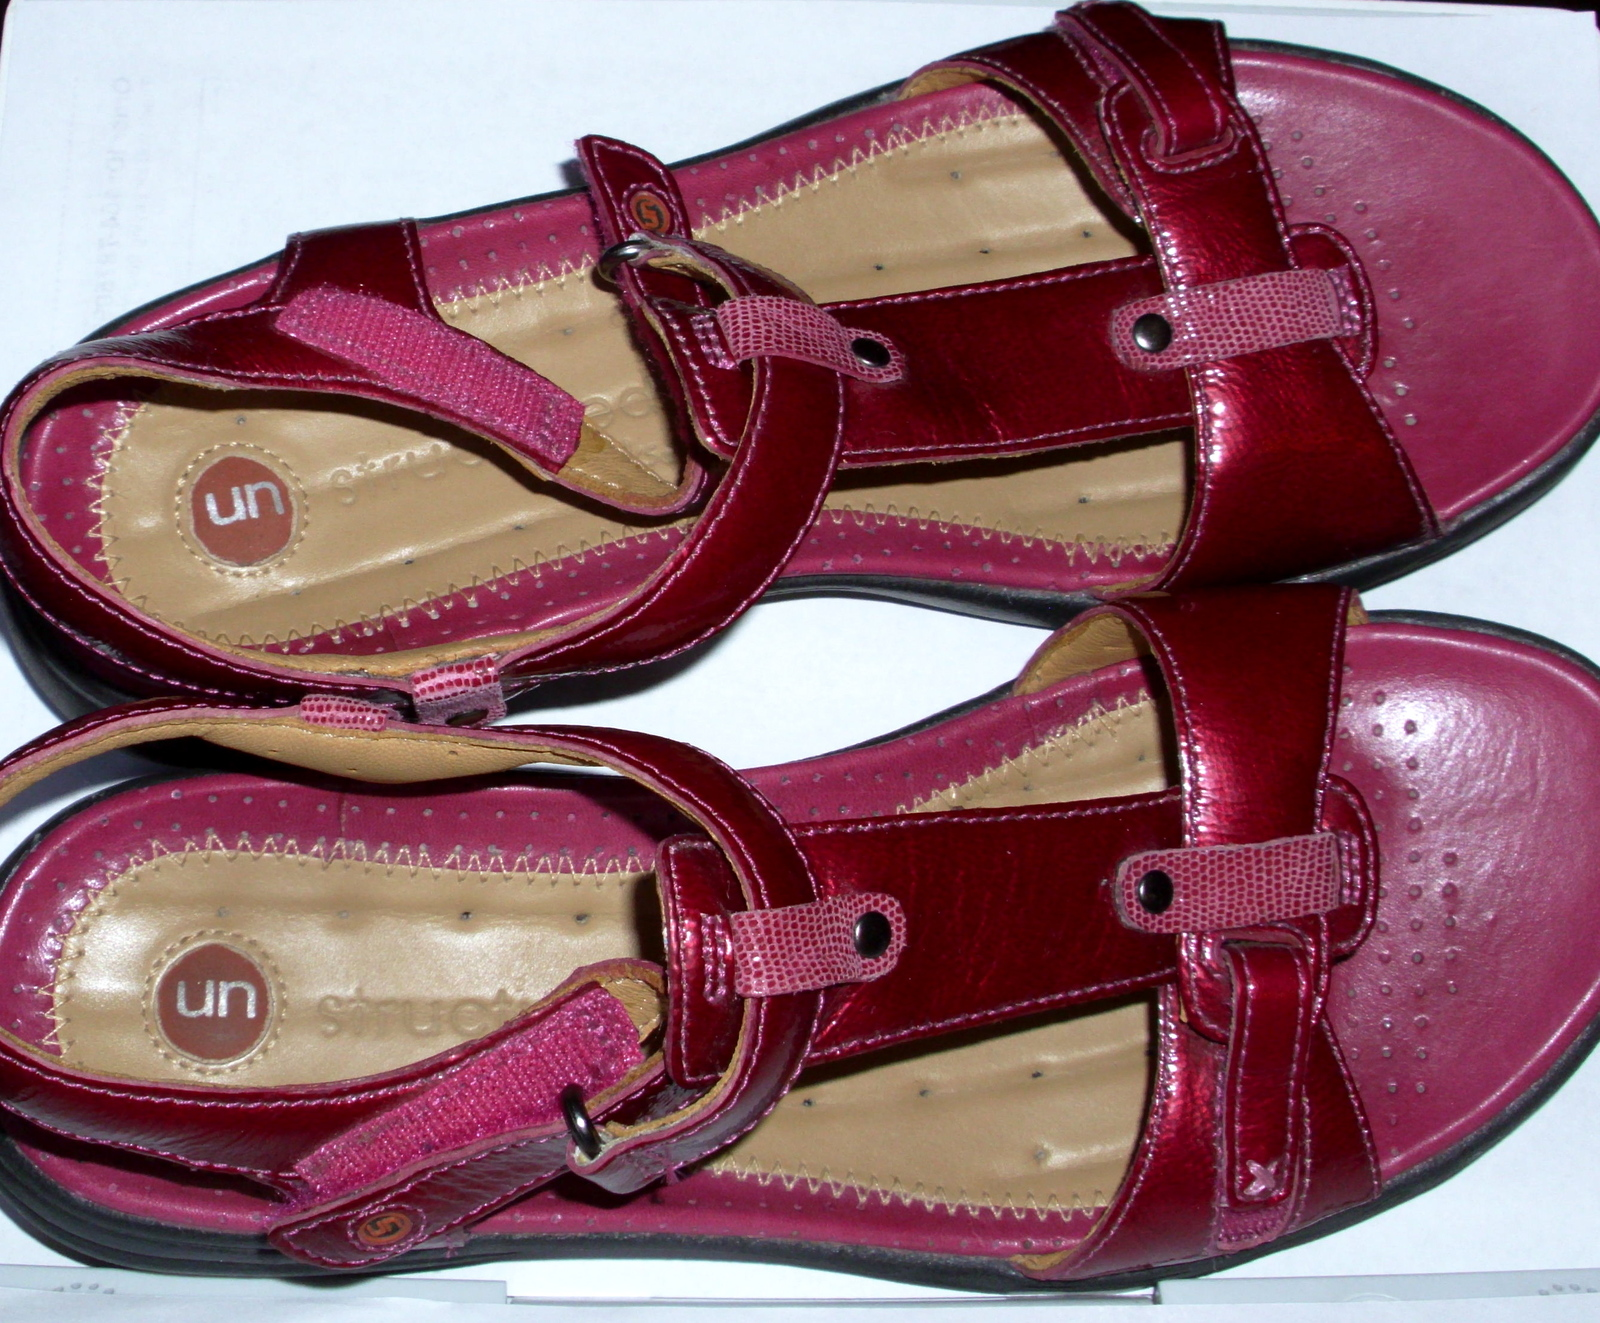 25e557589461 Clarks Structured Sandals and 12 similar items. Dsci0459